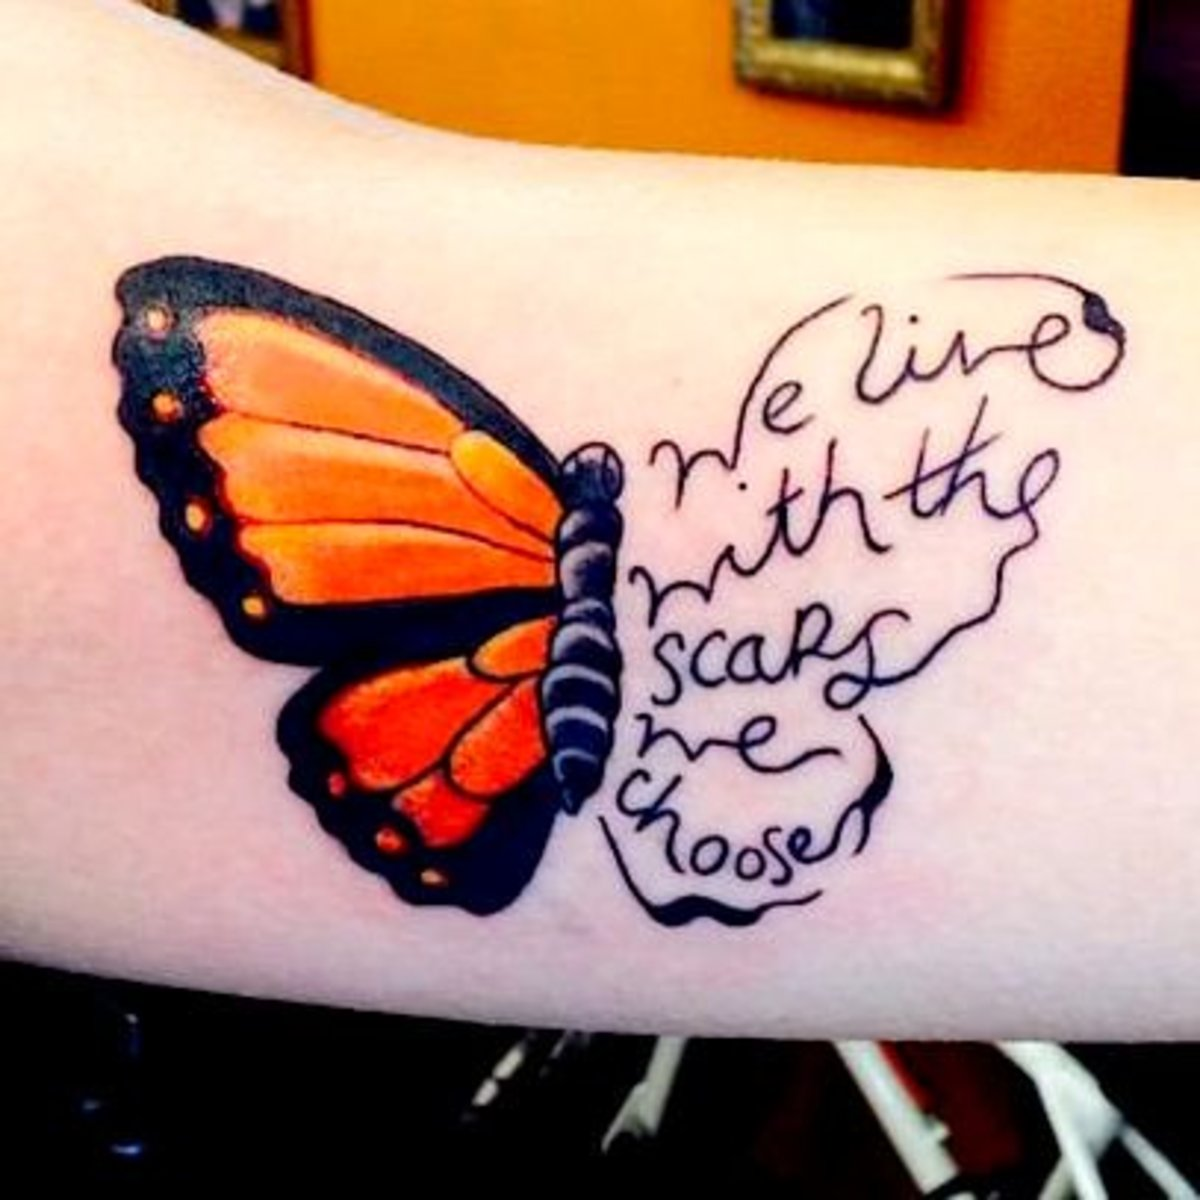 16 Tattoos Celebrating Recovery | Inked Magazine - Tattoo Ideas, Artists and Models